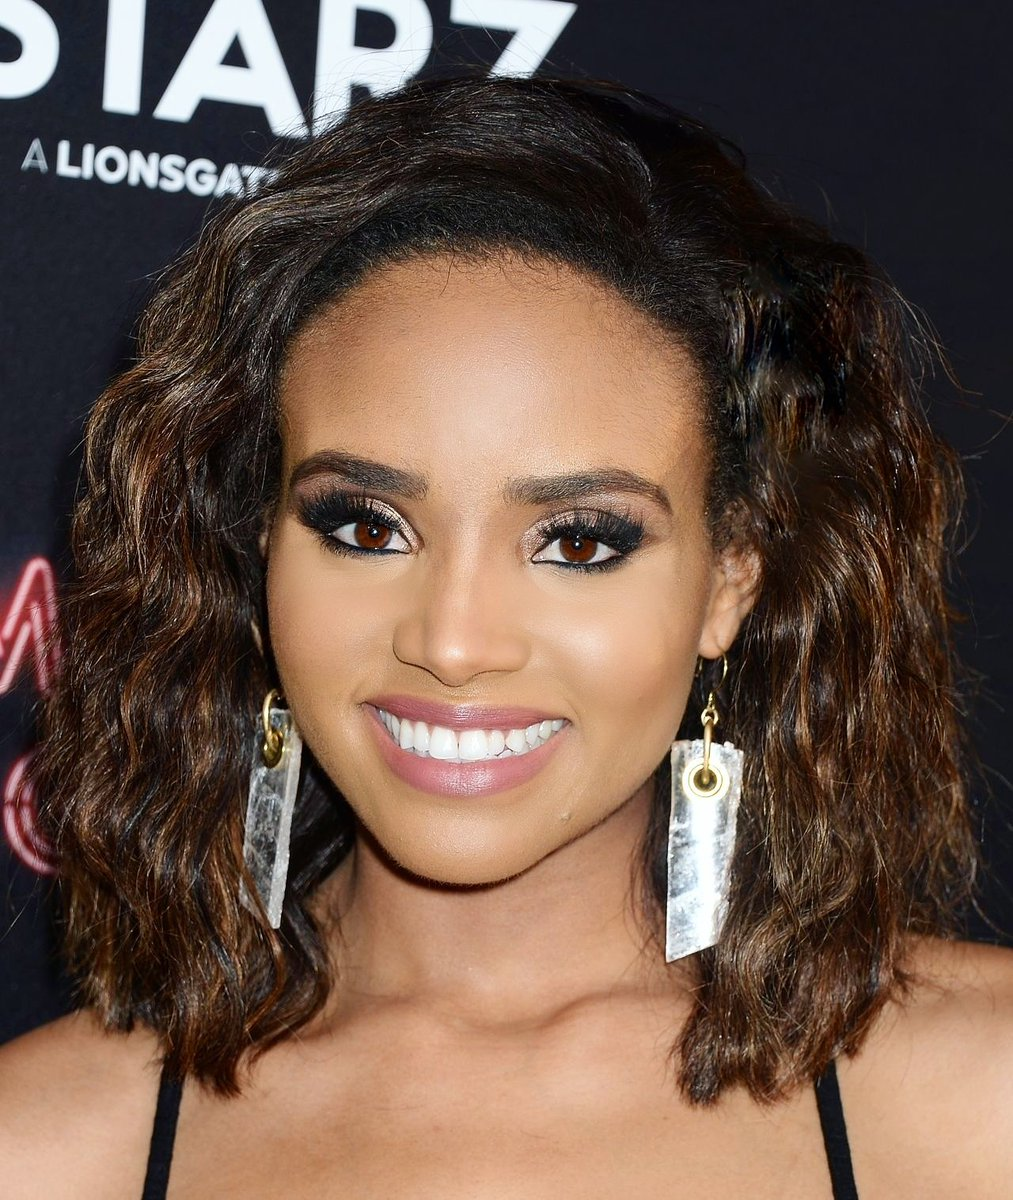 Twitter Meagan Tandy nudes (43 photos), Ass, Leaked, Instagram, swimsuit 2017